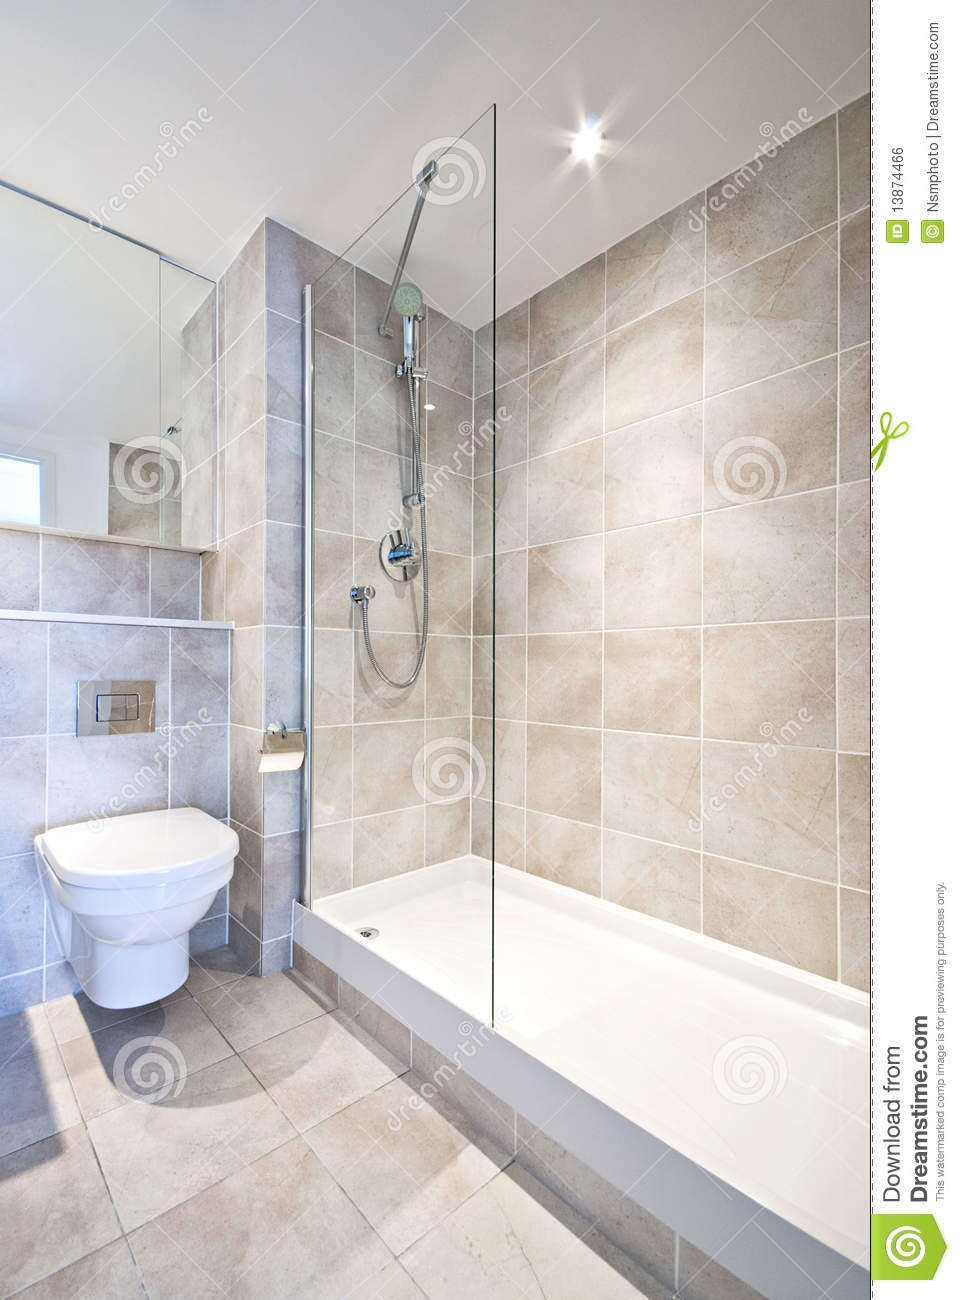 Modern en suite bathroom with large shower royalty free for Salle de bain moderne avec douche